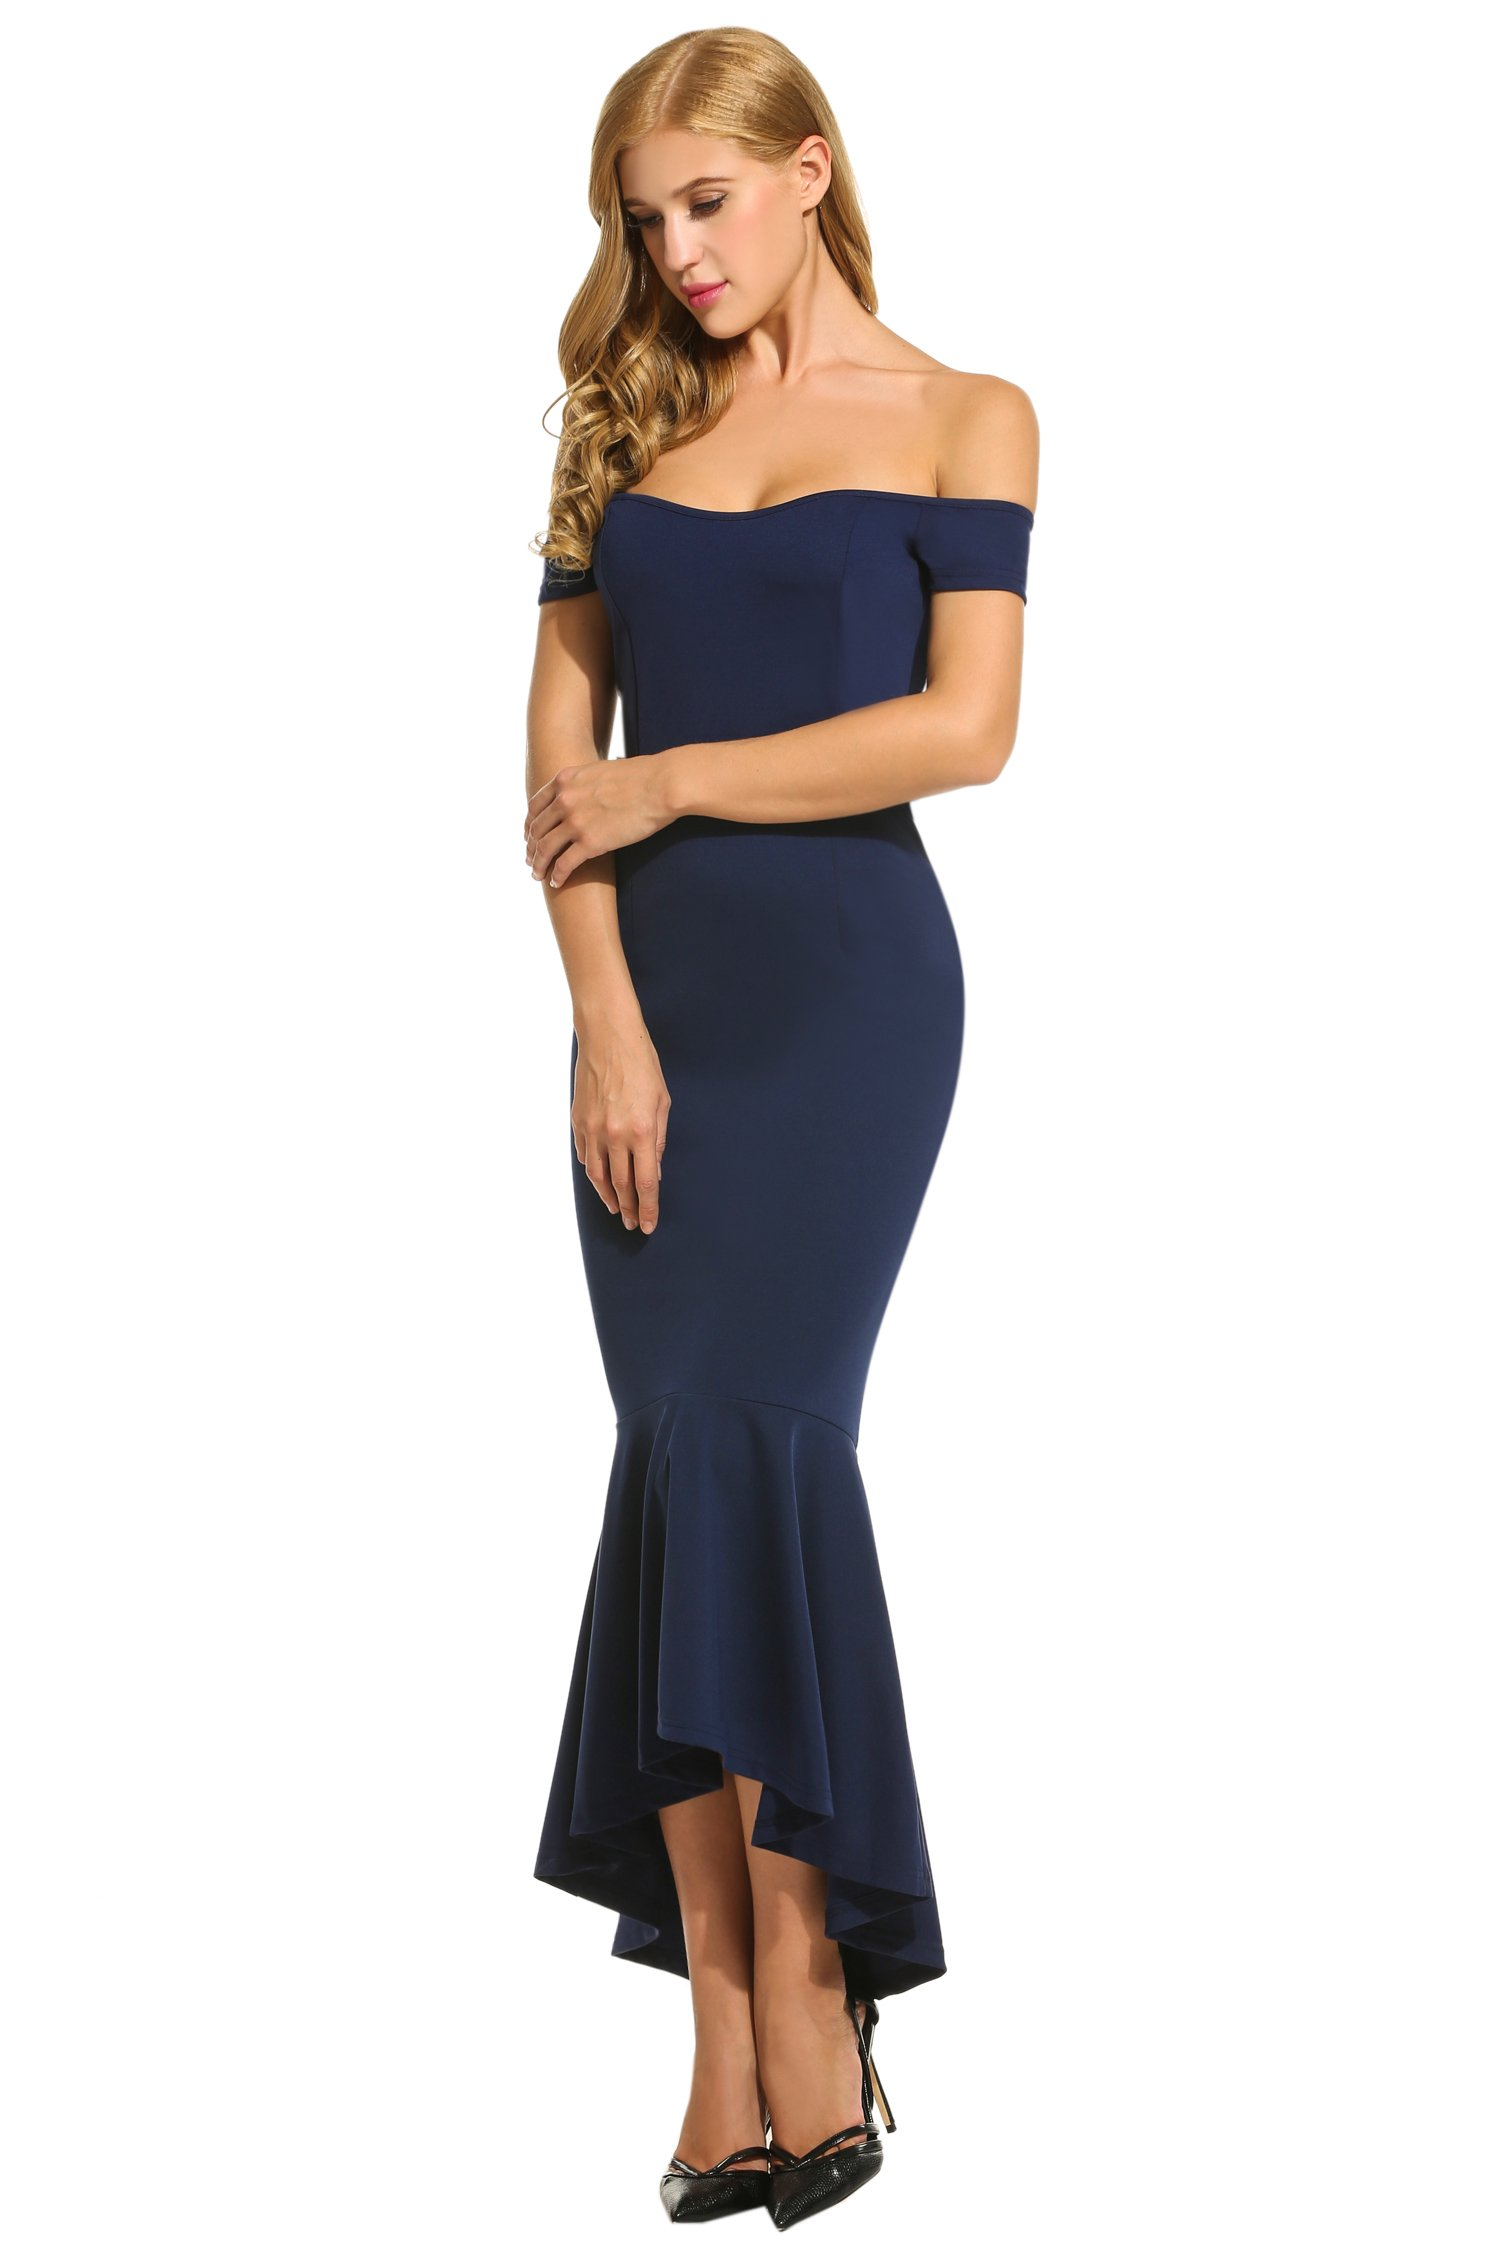 HOTOUCH Women's high waisted Mermaid Off The Shoulder Dresses Navy Blue S